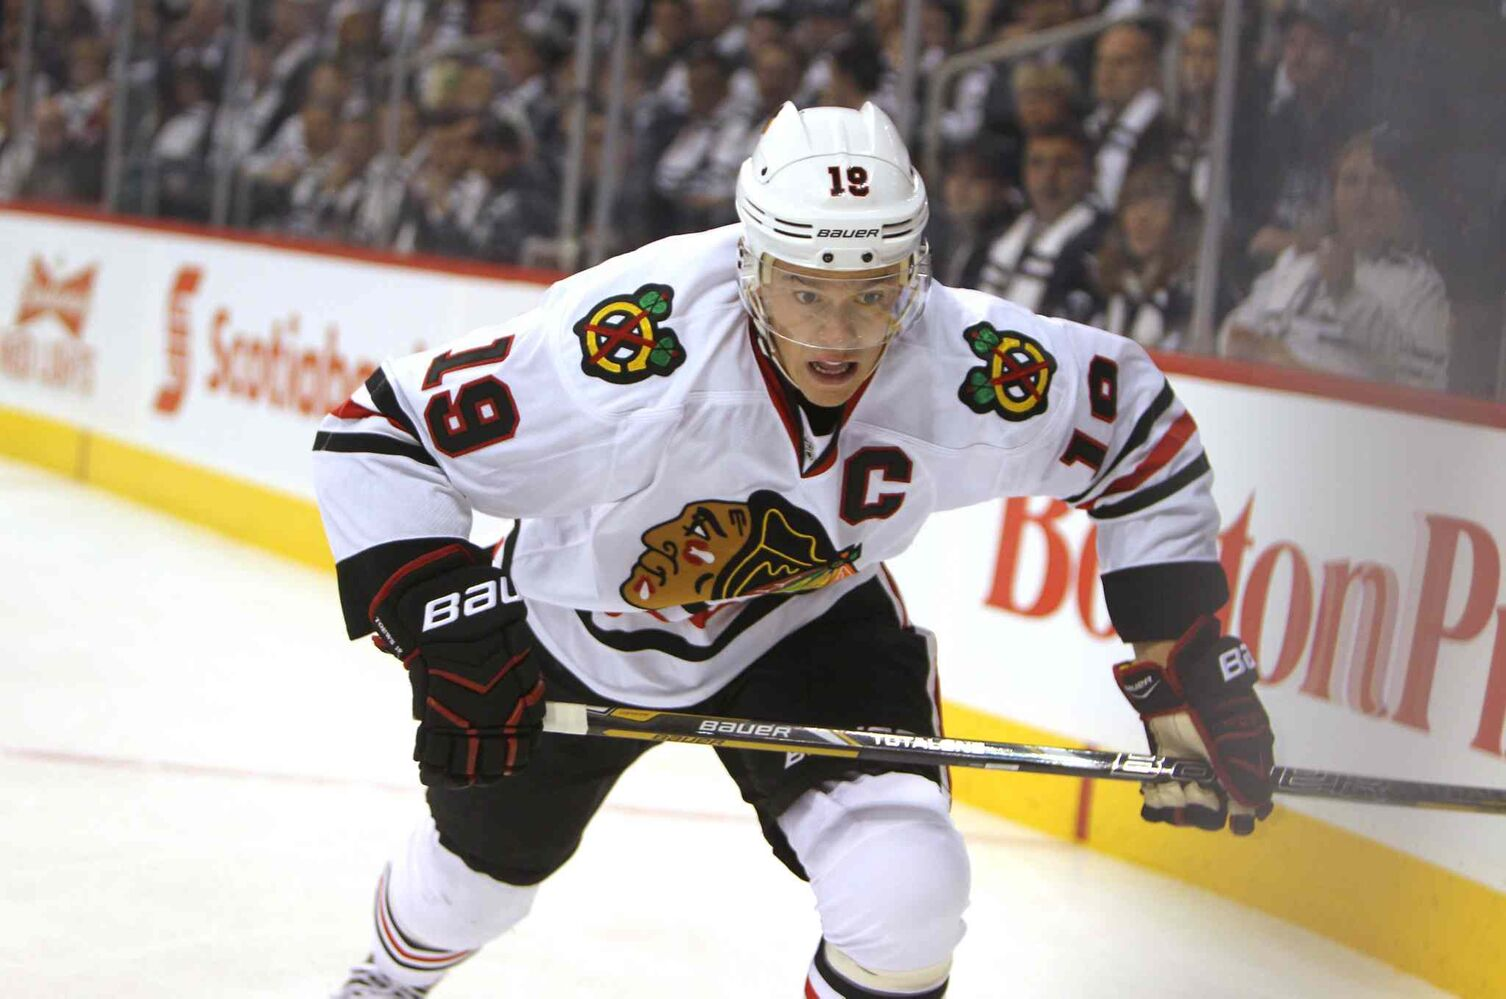 Jonathan Toews rushes down the boards during Saturday afternoons game. (Ruth Bonneville / Winnipeg Free Press)